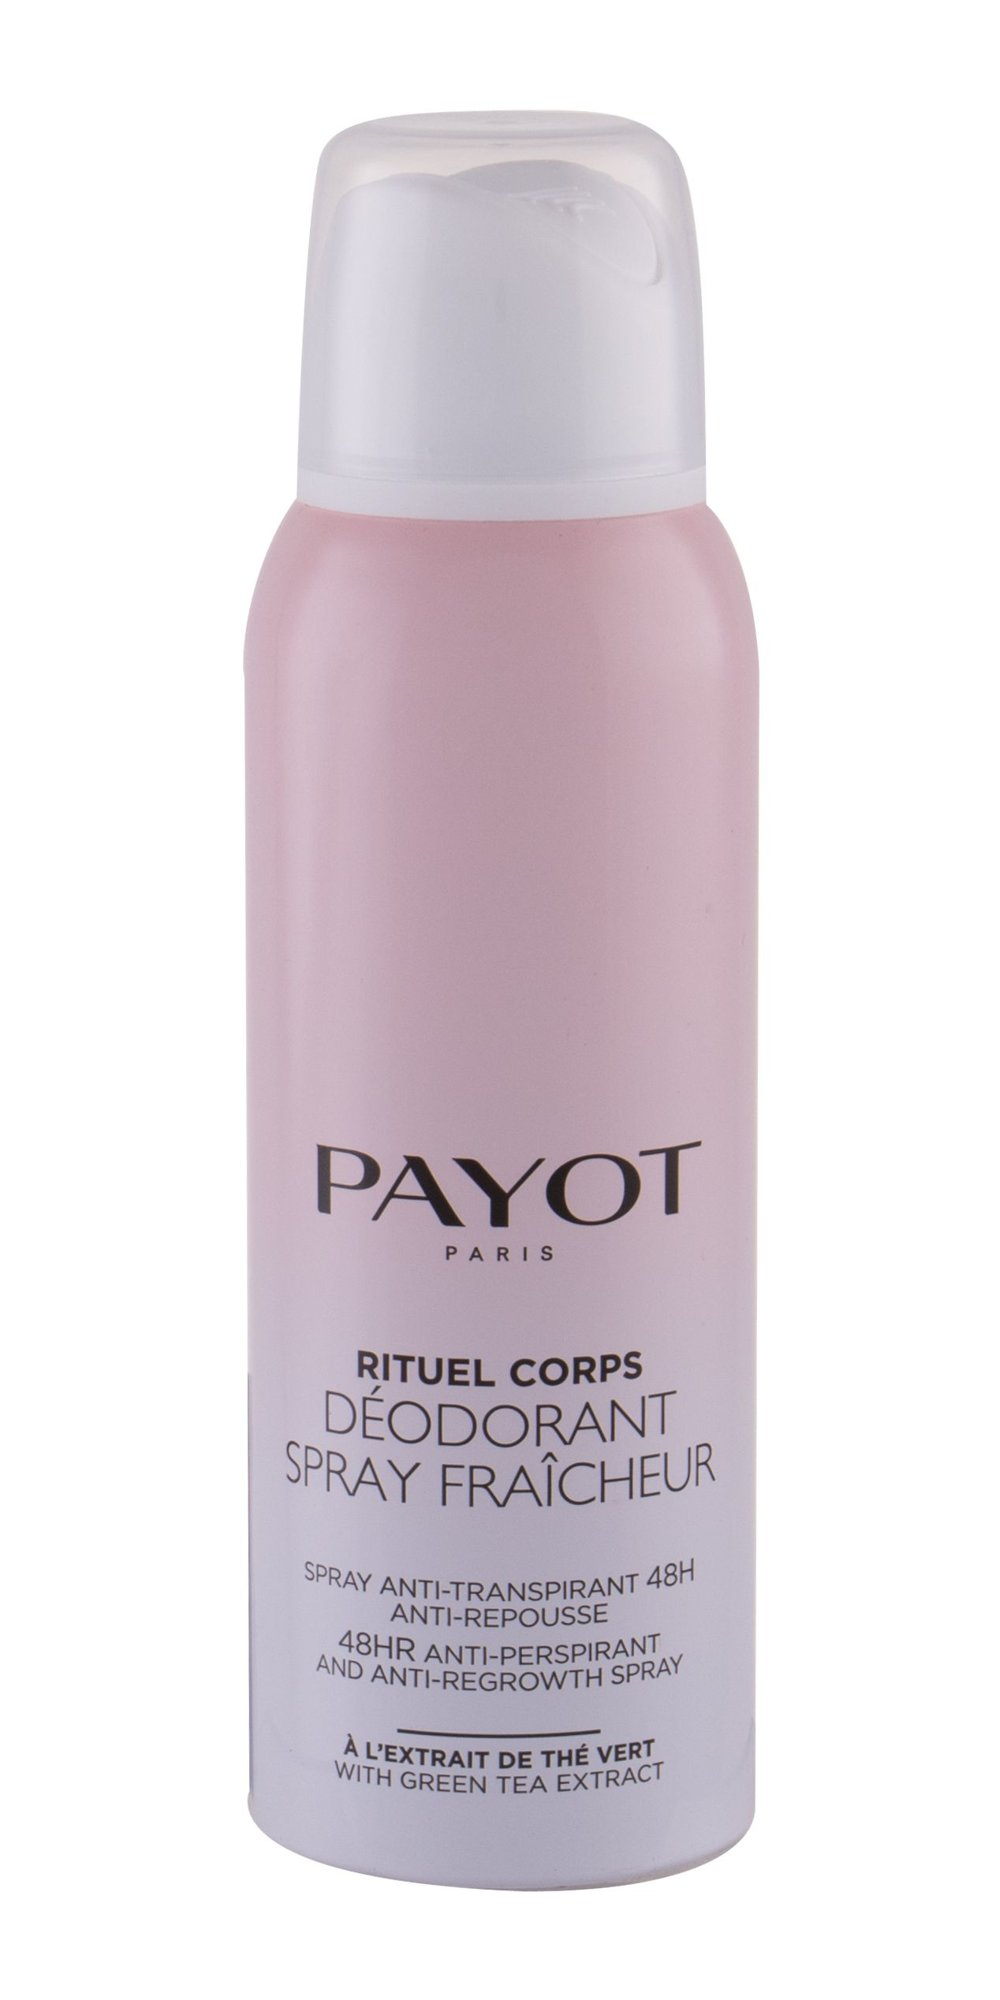 PAYOT Rituel Corps  (Antiperspirant, W, 125 ml, Tester)